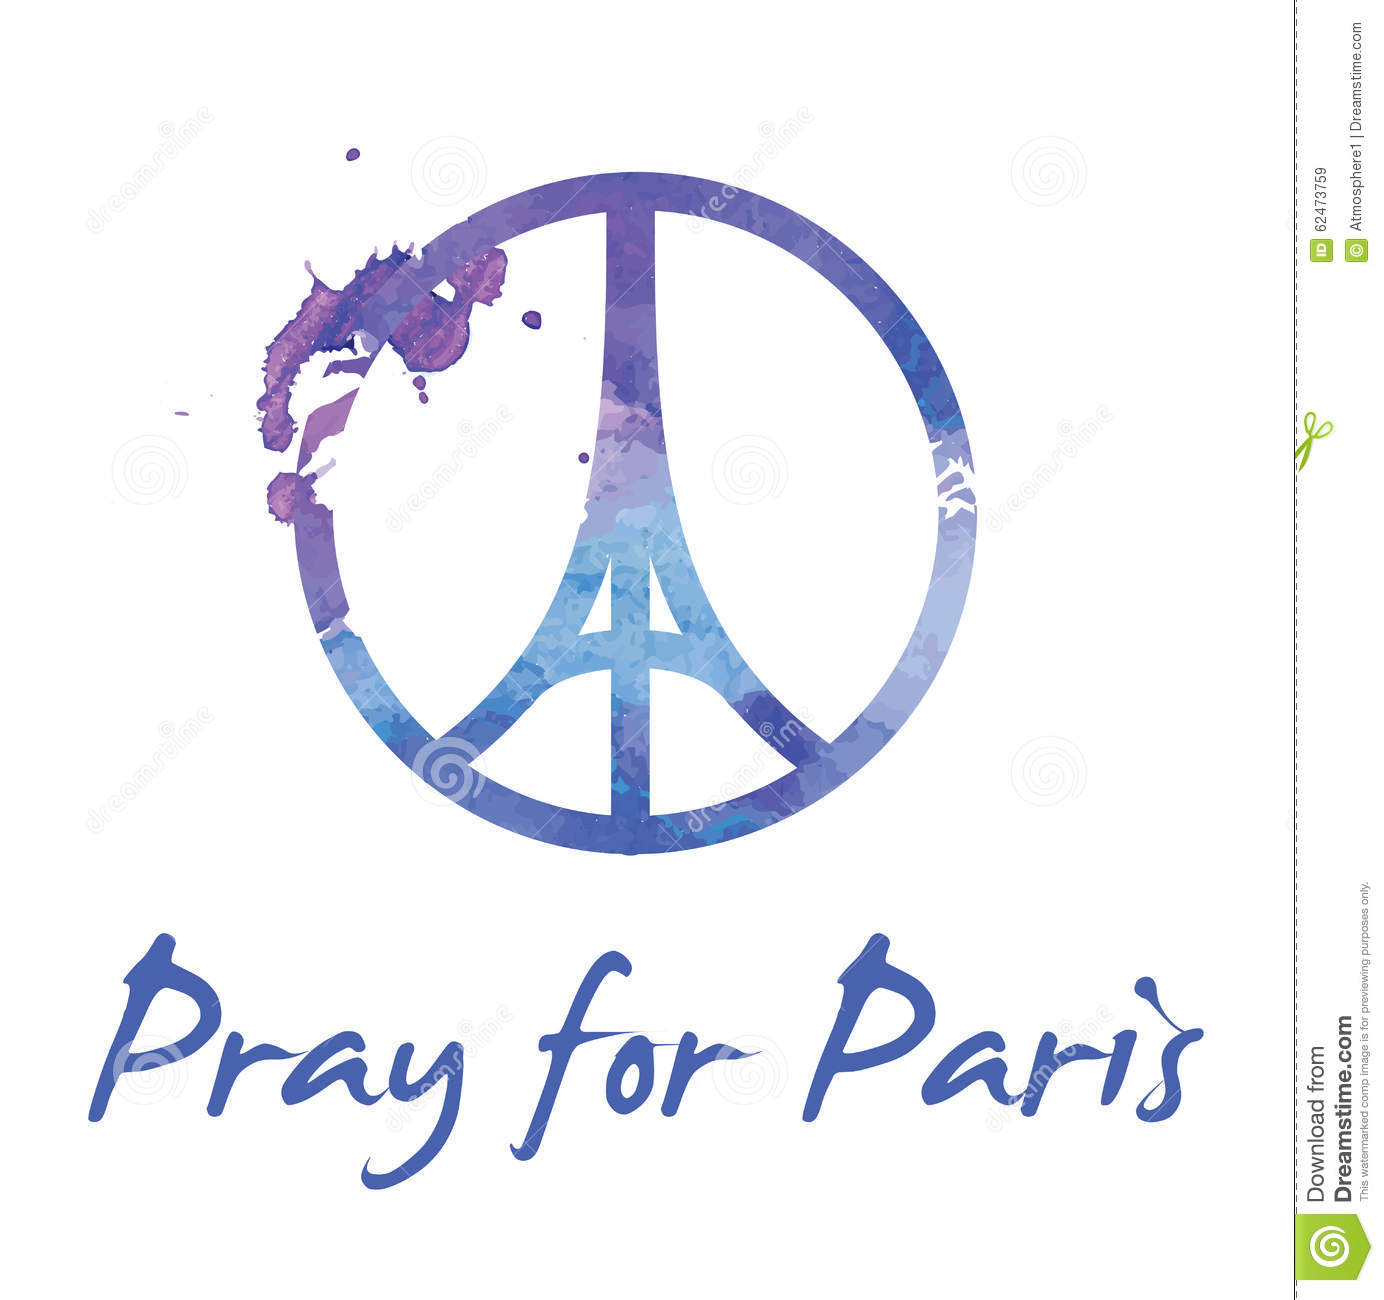 Pray for paris illustration of a symbol with praying hands pray for paris illustration of a symbol with praying hands eiffel tower and symbol for peace biocorpaavc Gallery